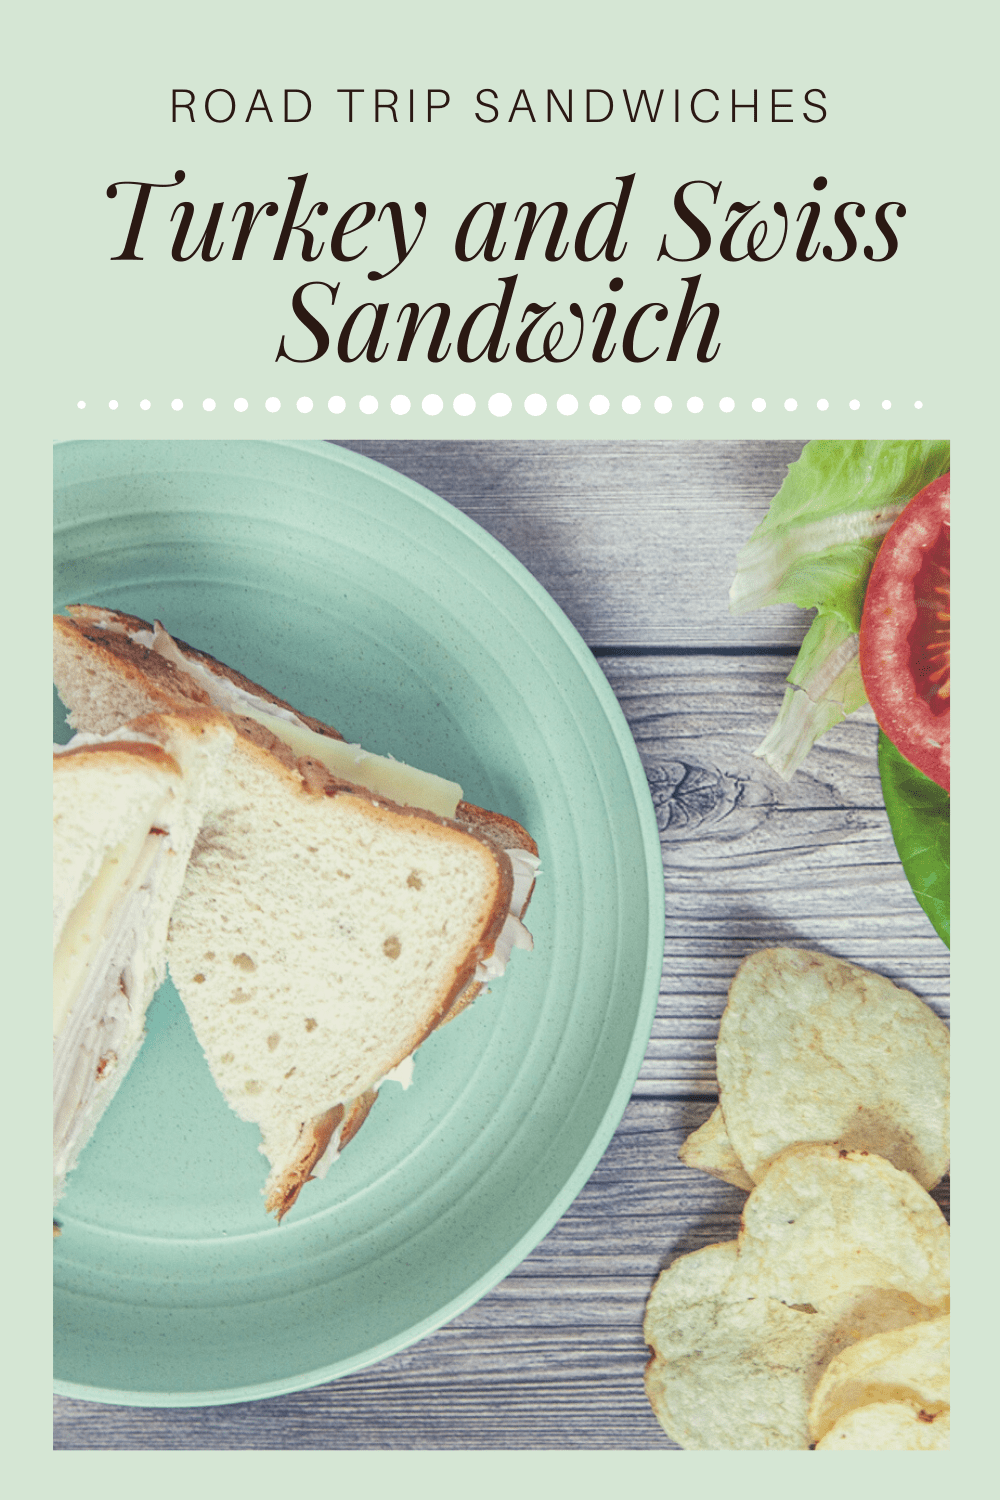 A deli turkey and Swiss sandwich is a crowd pleaser and an easy sandwich to pack for a road trip. For this basic meat and cheese road trip sandwich recipe use smoked turkey and Swiss cheese on white bread, but you can mix it up with any combo of deli meats, cheeses, breads, or condiments! Try roast beef, chicken, ham, cheddar, provolone, wheat bread, mustard - whatever combo you desire! #RoadTripMeals #RoadTripMealsToPack #MakeAheadRoadTripMeals  #CheapRoadTripMeals #RoadTripLunches